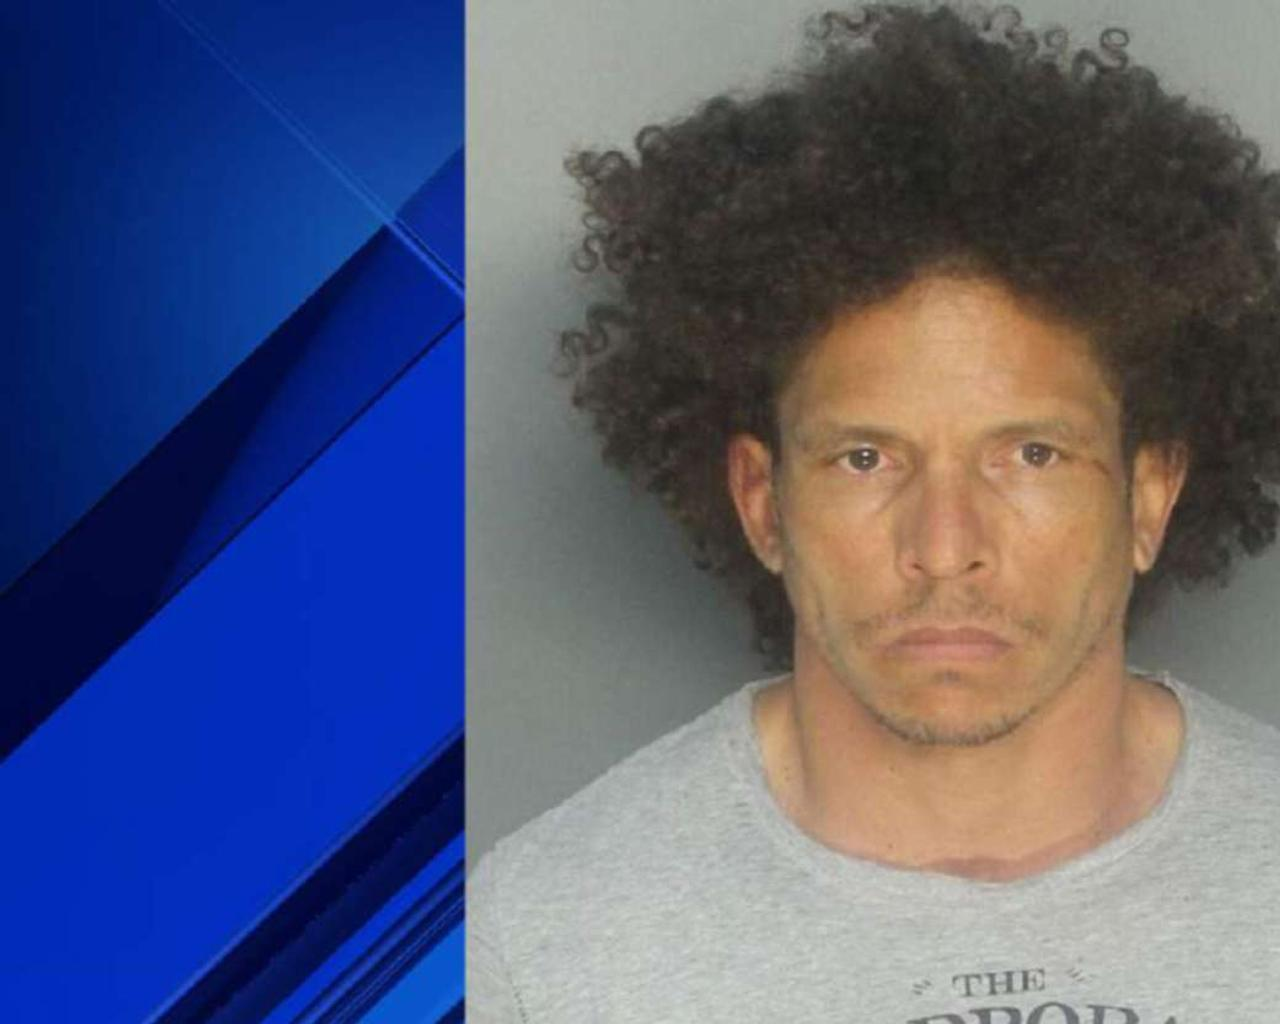 Man arrested after a 12-year-old boy was raped and shot in the face.